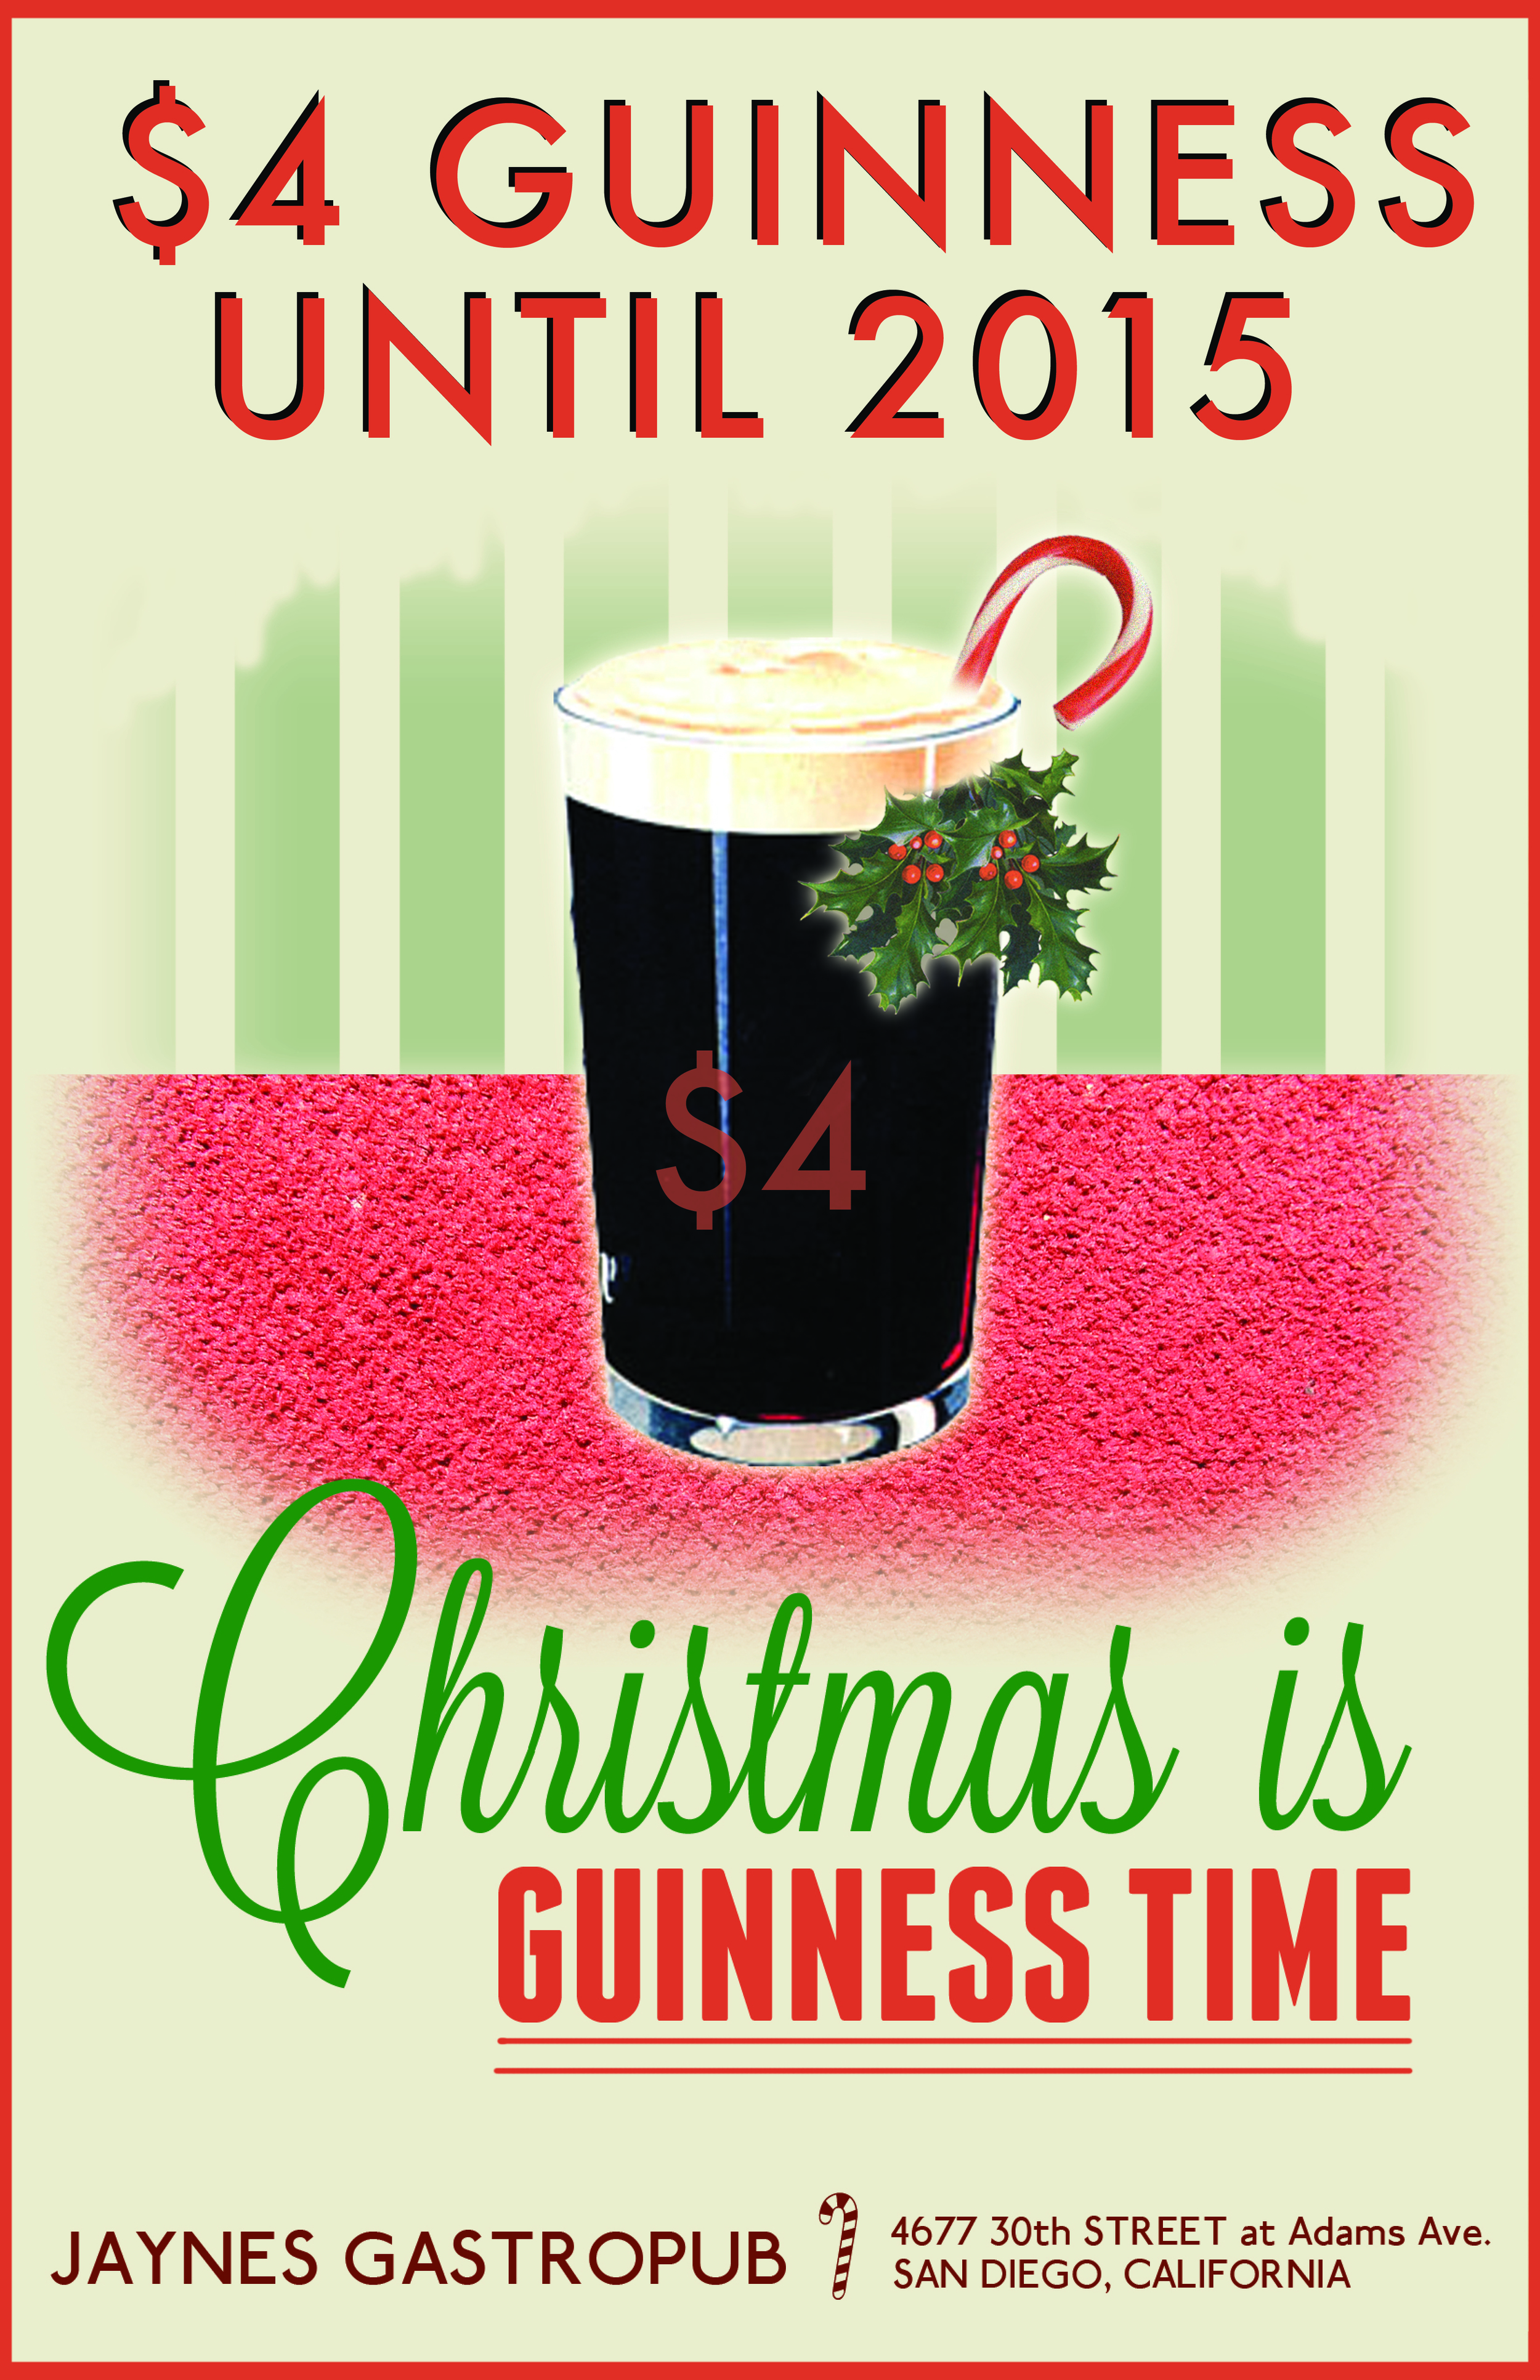 guinness-san-diego-normal-heights